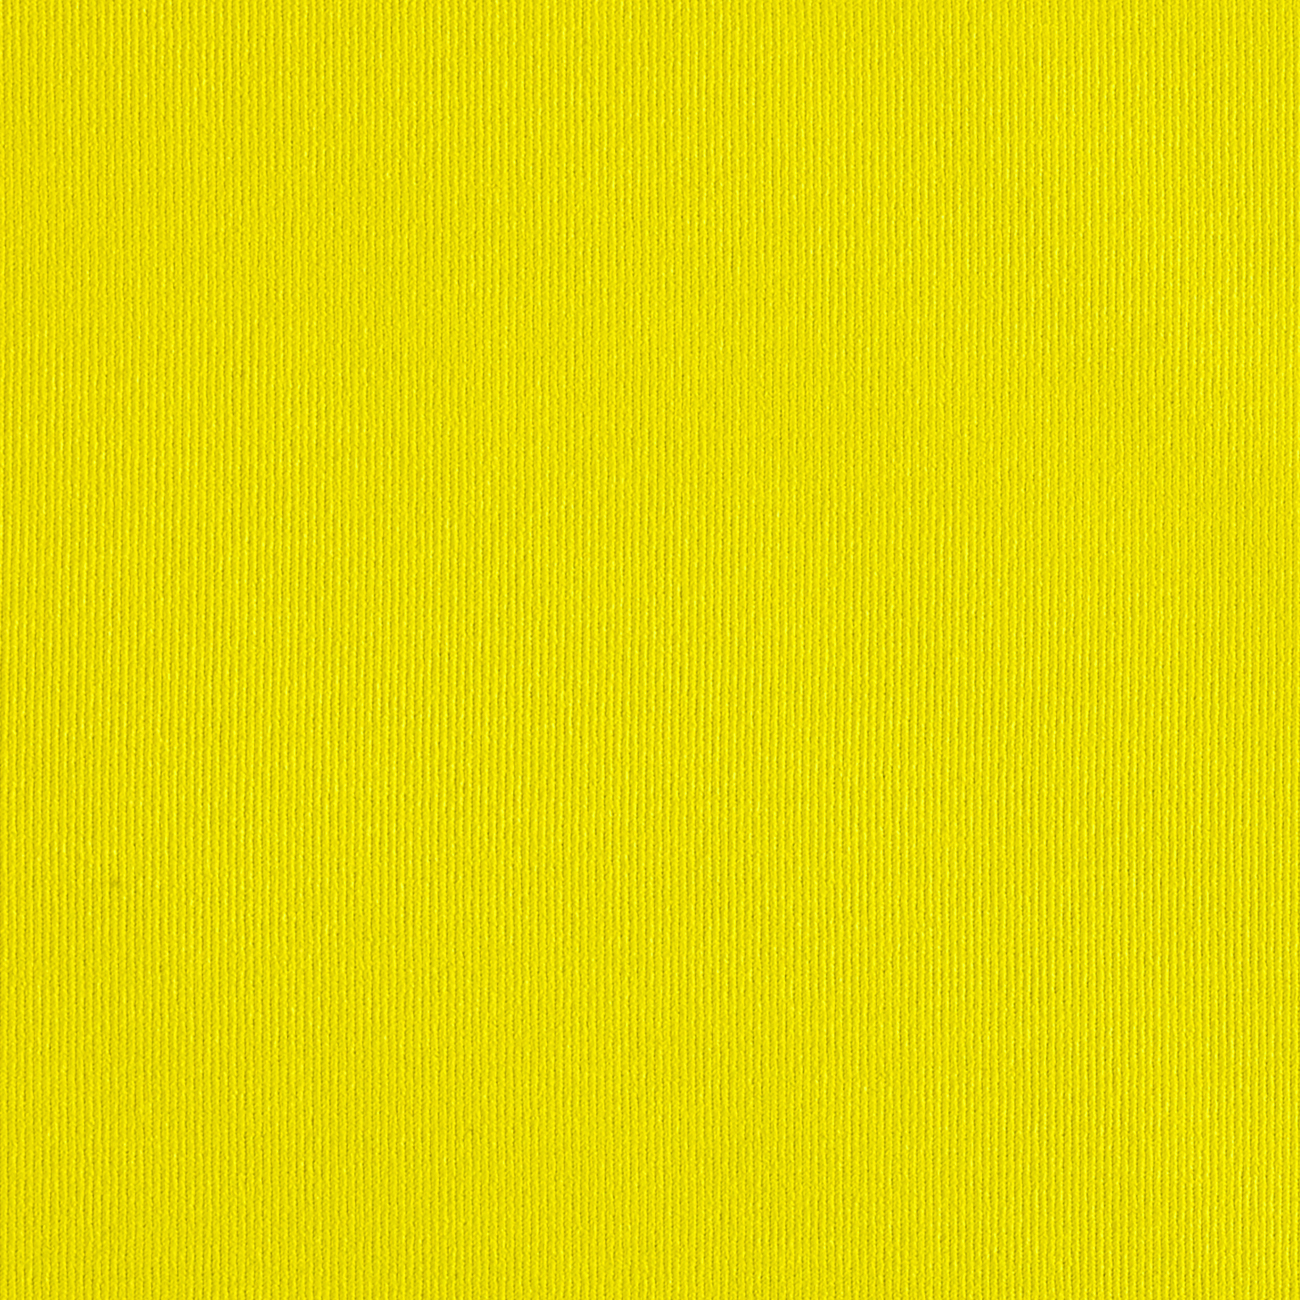 Tricot Solid Neon Yellow Fabric by Mike Cannety in USA